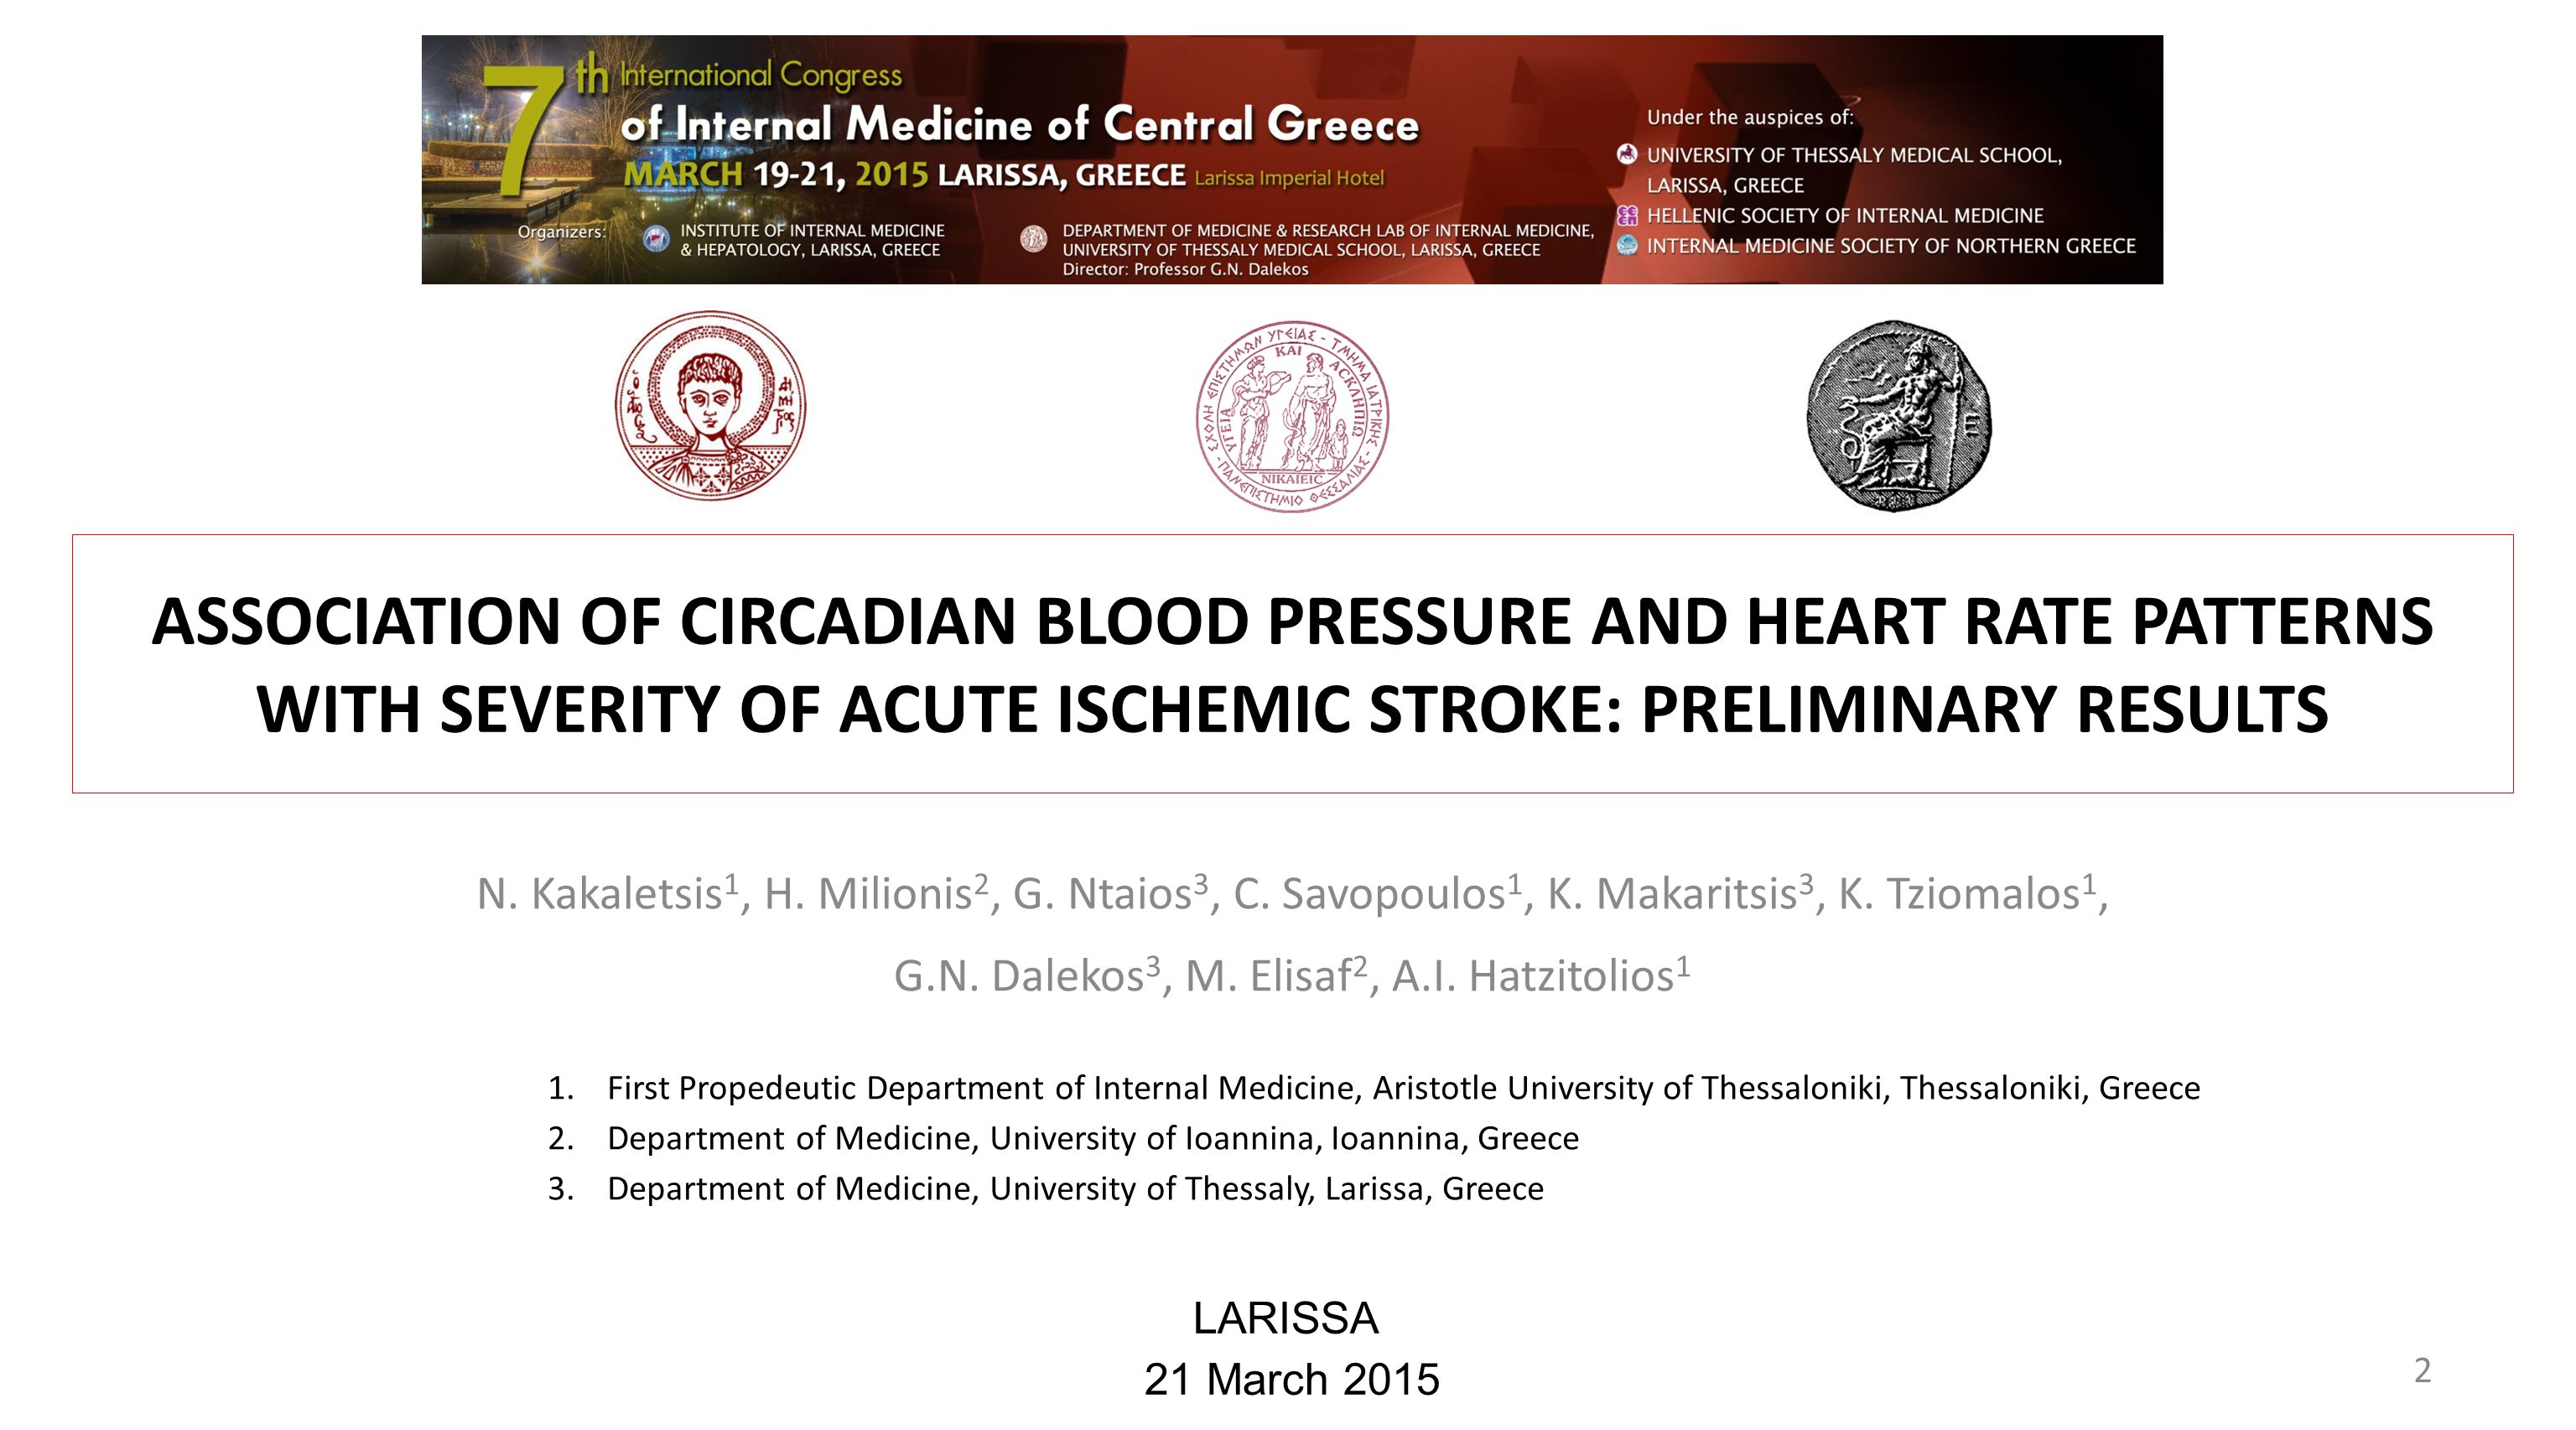 ASSOCIATION OF CIRCADIAN BLOOD PRESSURE AND HEART RATE PATTERNS WITH SEVERITY OF ACUTE ISCHEMIC STROKE: PRELIMINARY RESULTS N. Kakaletsis 1, H. Milion